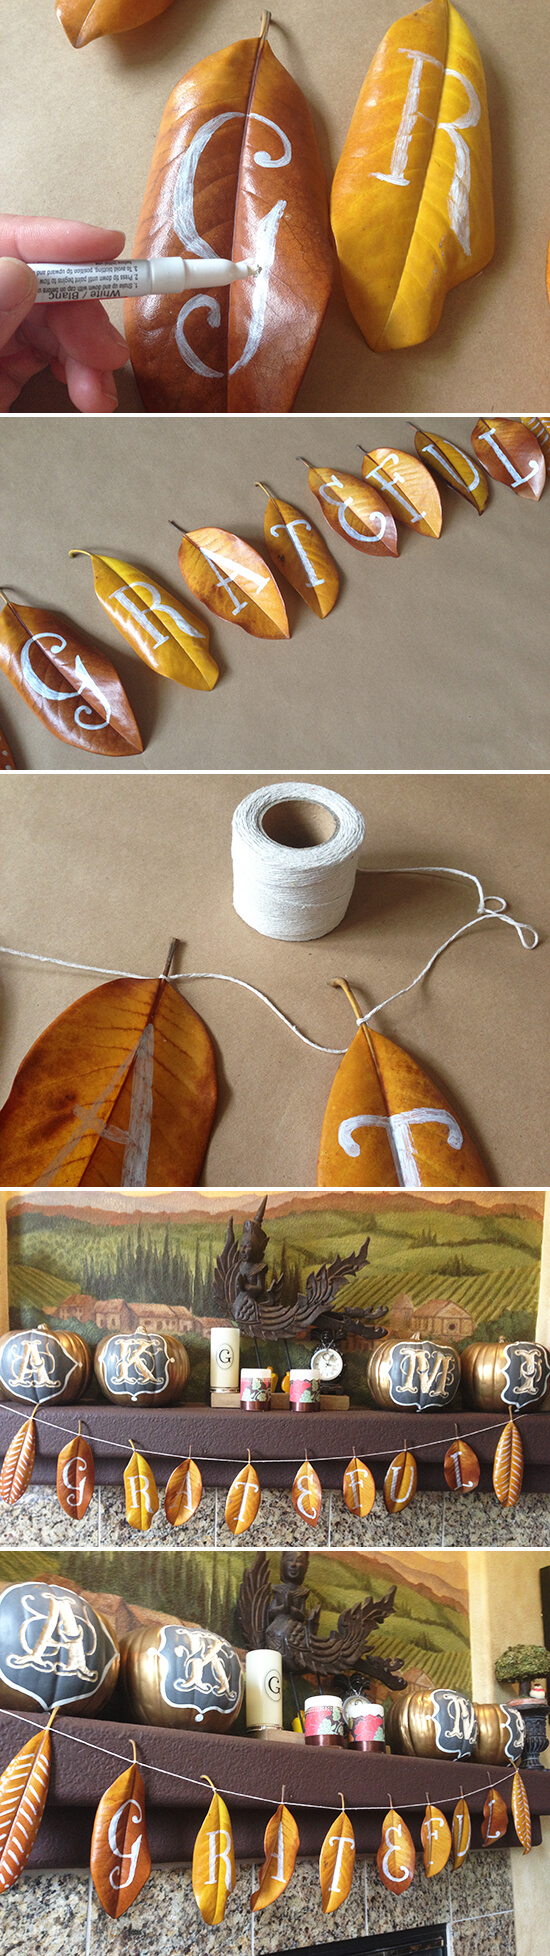 Make this incredible DIY grateful garland to add a welcoming touch to your fall decor.